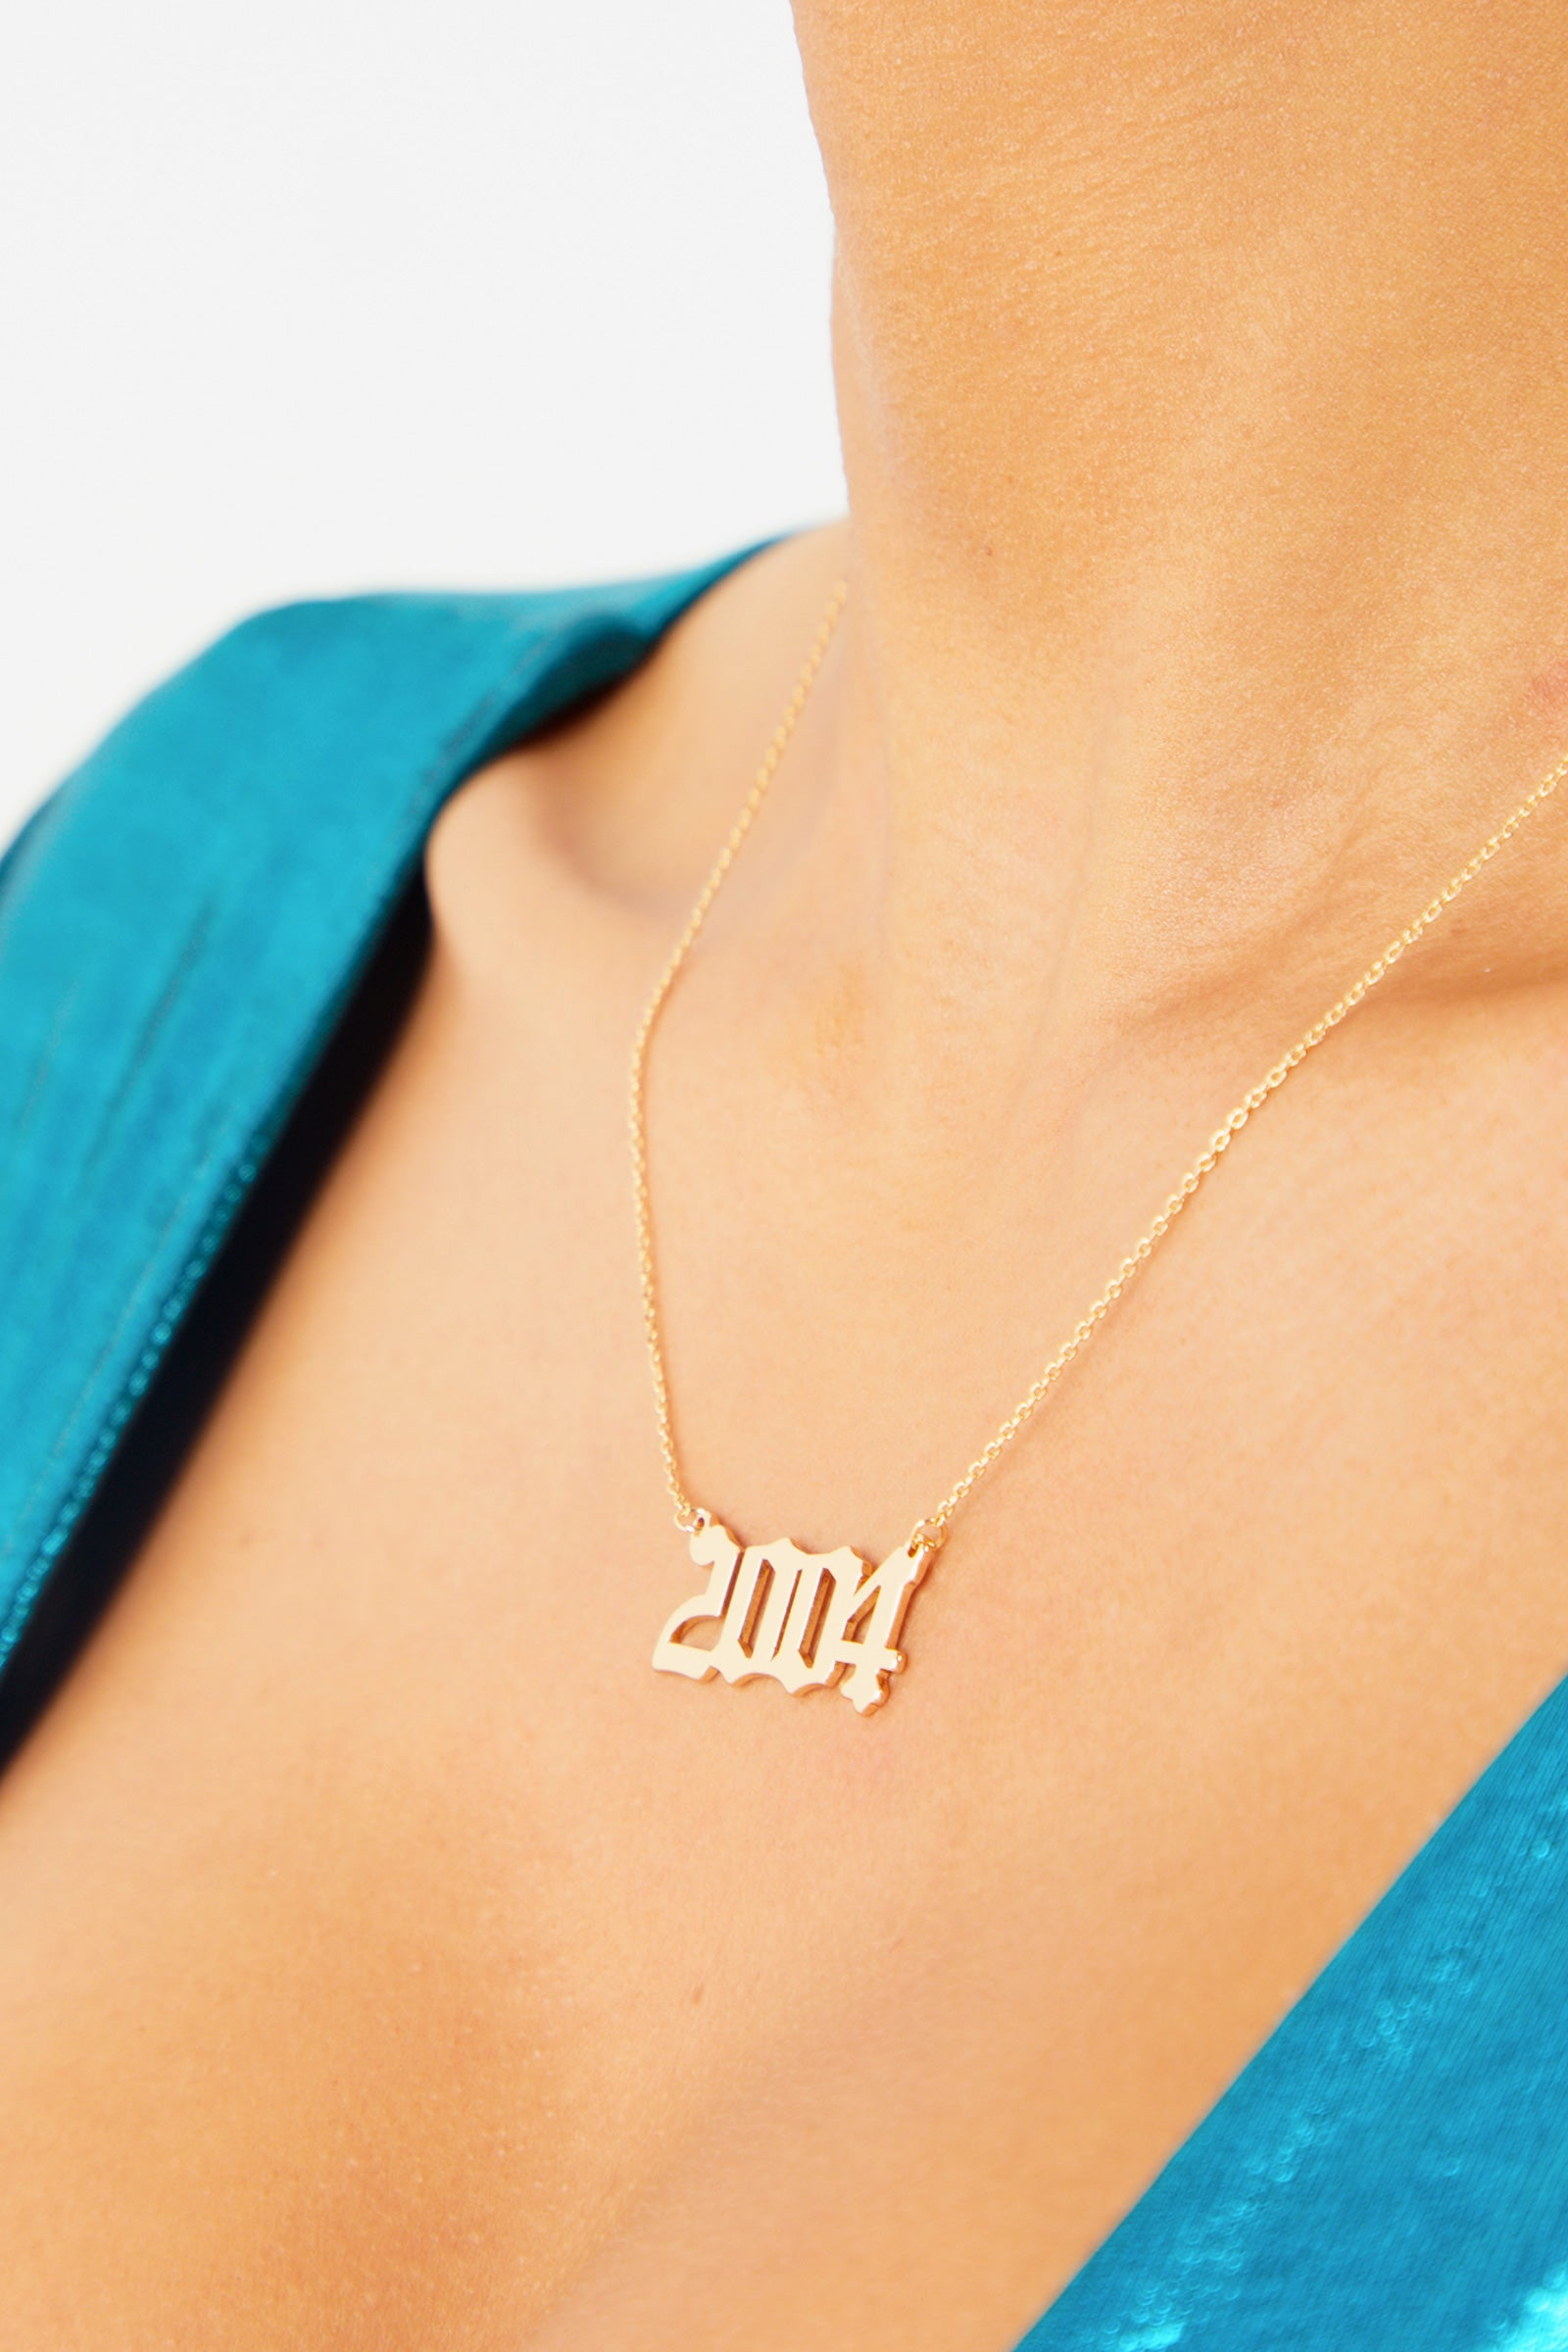 2004 Pendant Necklace - Gold